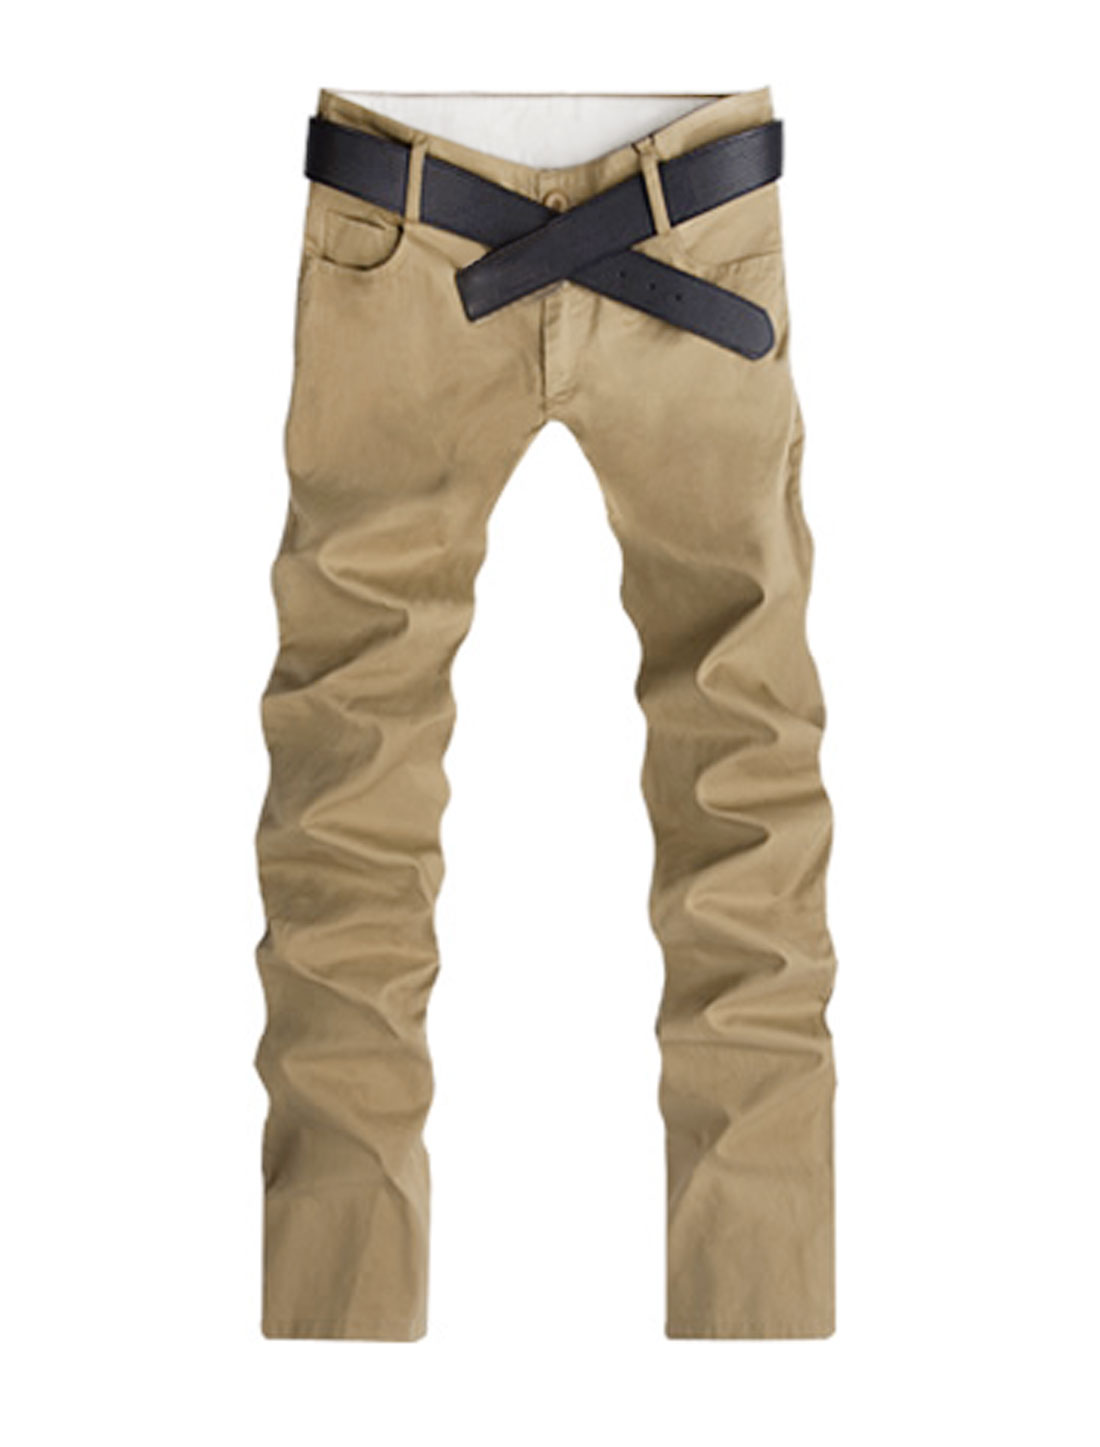 Summer Zipper Fly Hip Pockets Casual Pants for Men Khaki W32